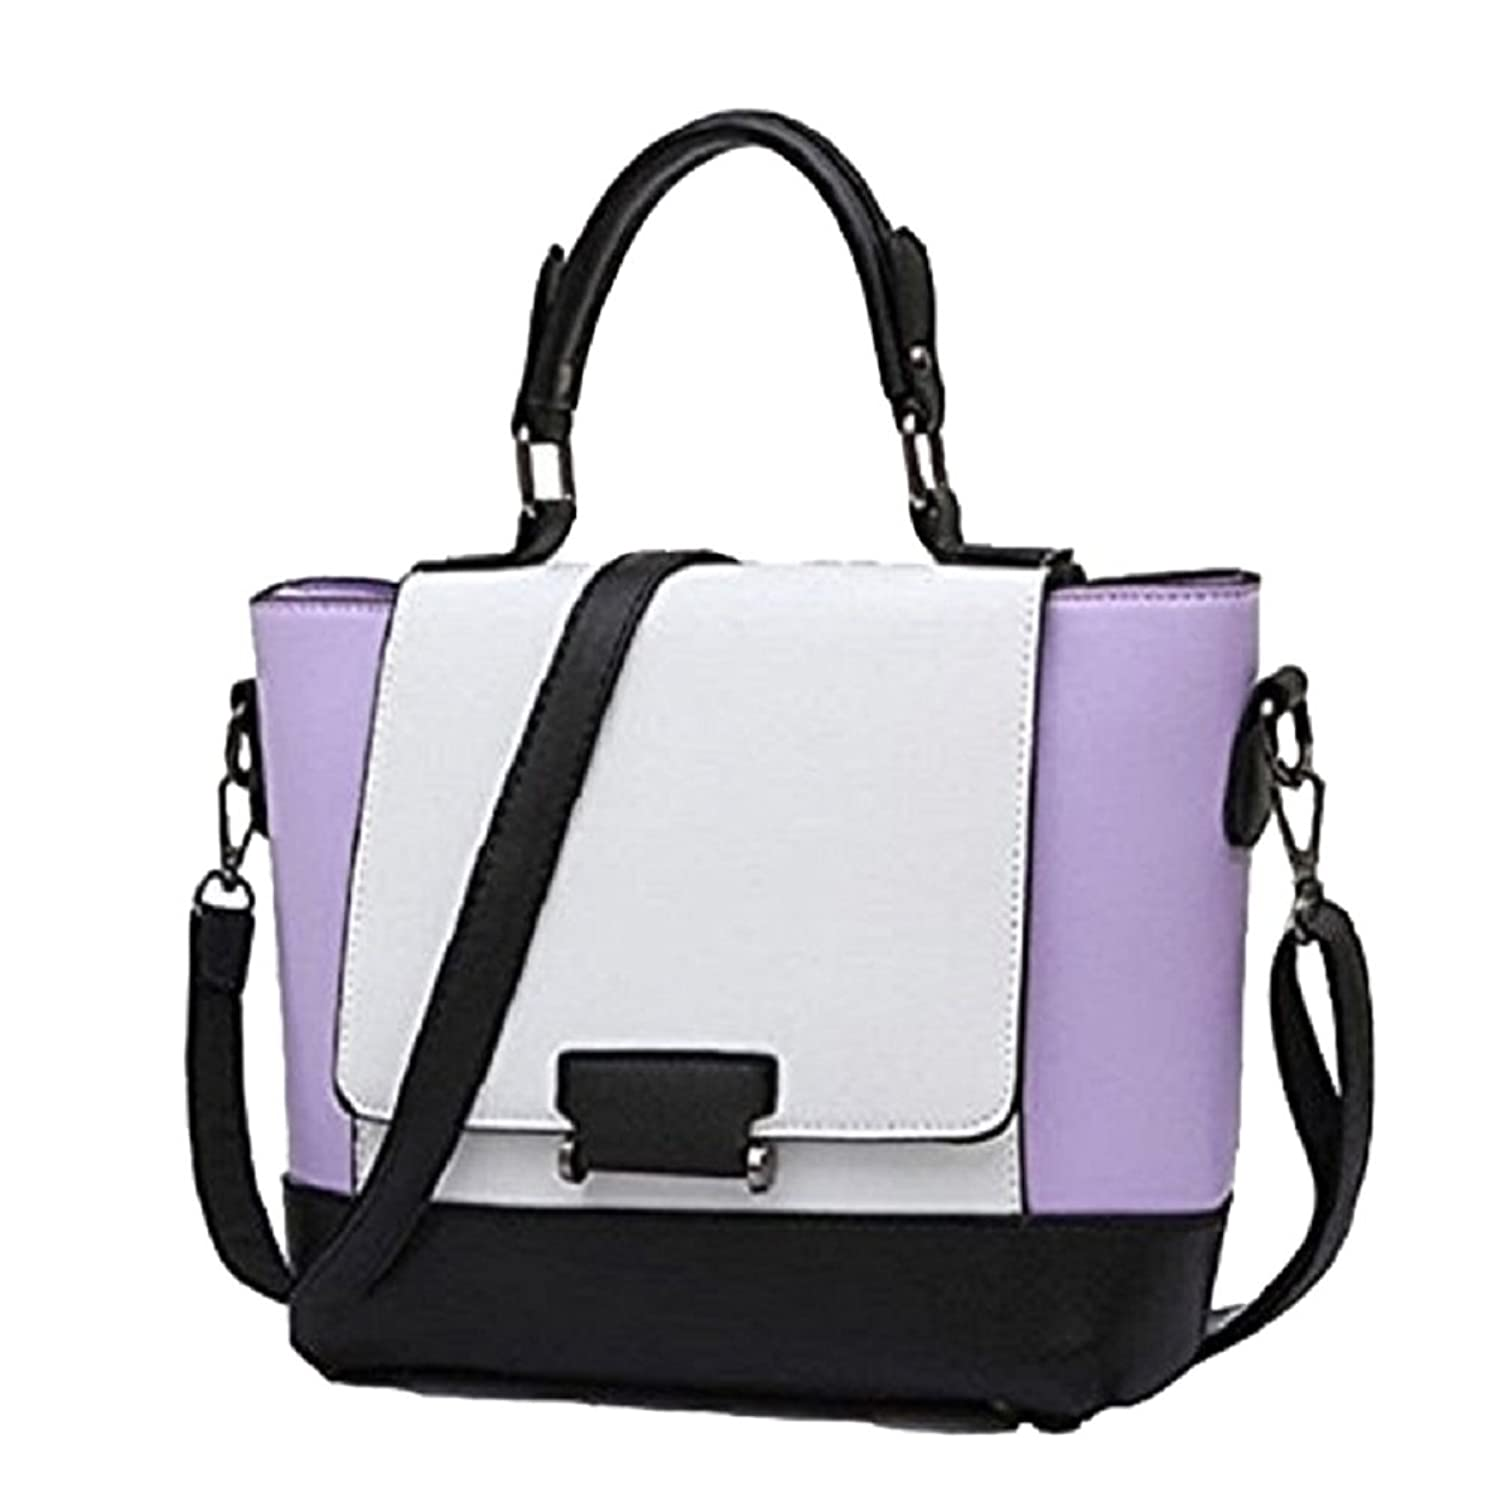 Cheap and New Woman Girl Bag Clutches Cross-Body Bag Tote Bag Satchels PU Leather Bag--fast delivery in one week